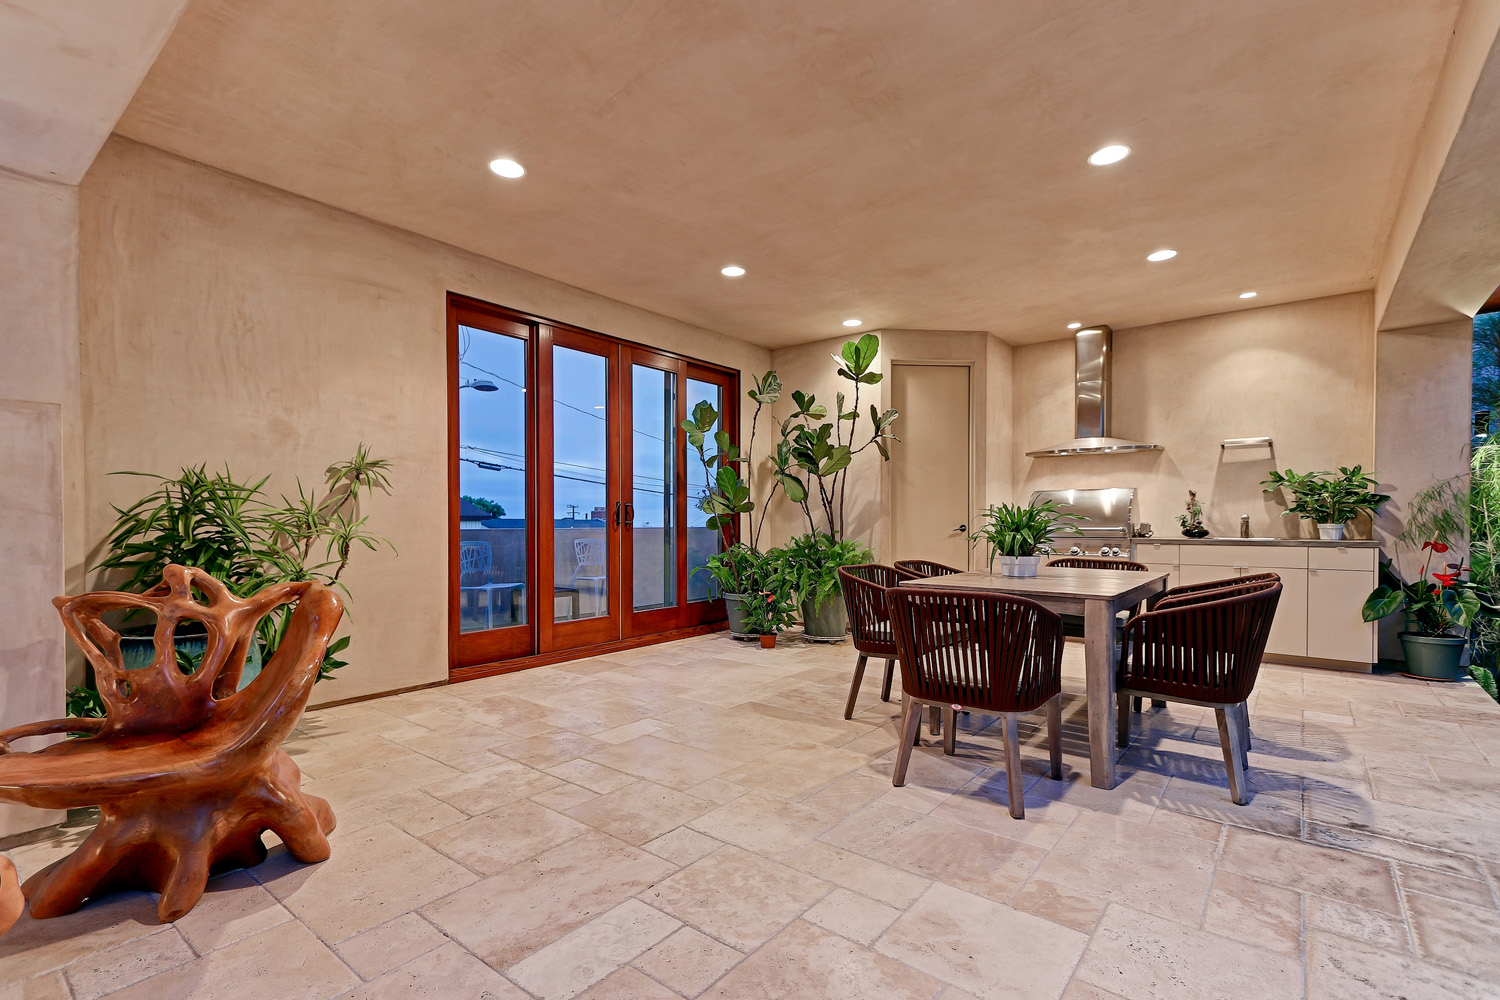 Additional photo for property listing at Hill Section Zen 1025 Duncan Pl., Manhattan Beach, CA 90266 曼哈顿海滩, 加利福尼亚州,90266 美国